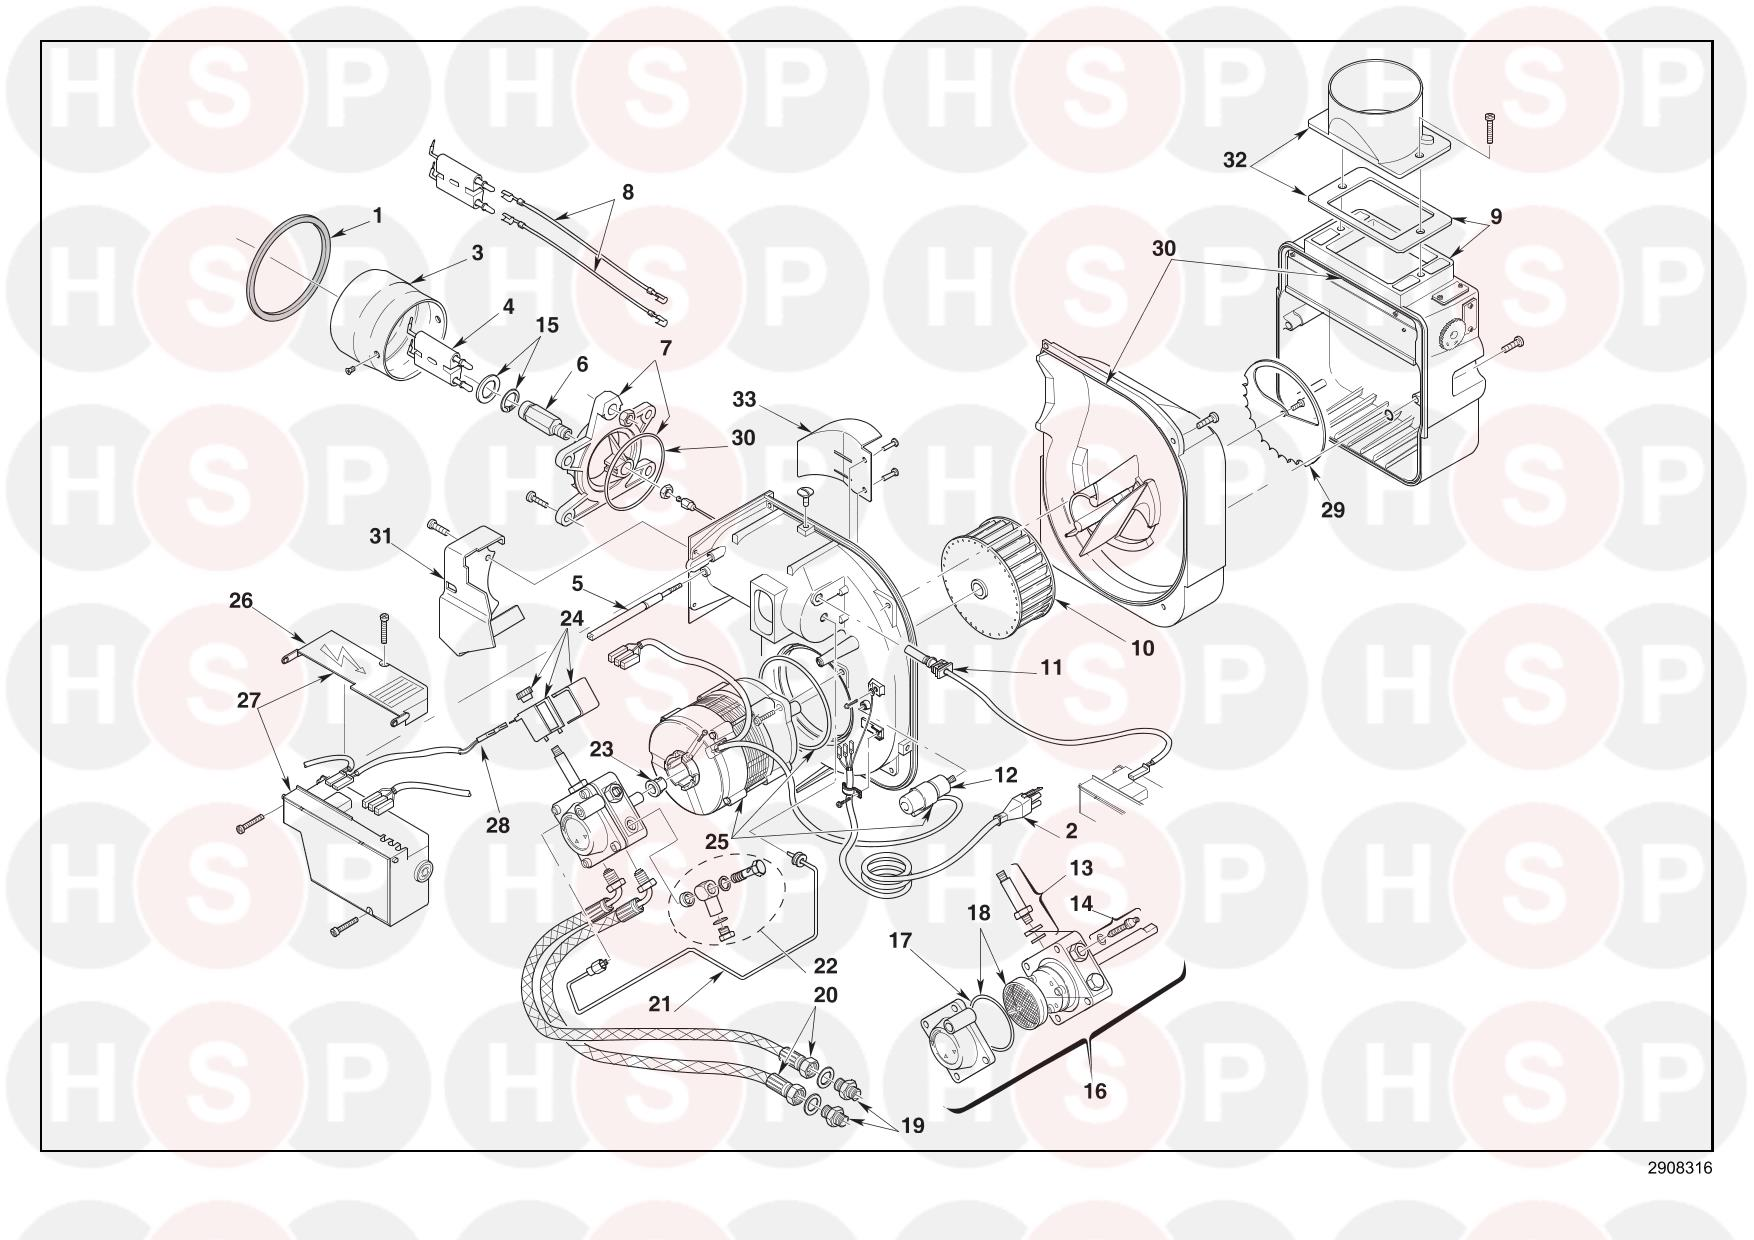 EXPLODED VIEW diagram for Riello RDB1 12/18 WH (TYPE 484LD2X)